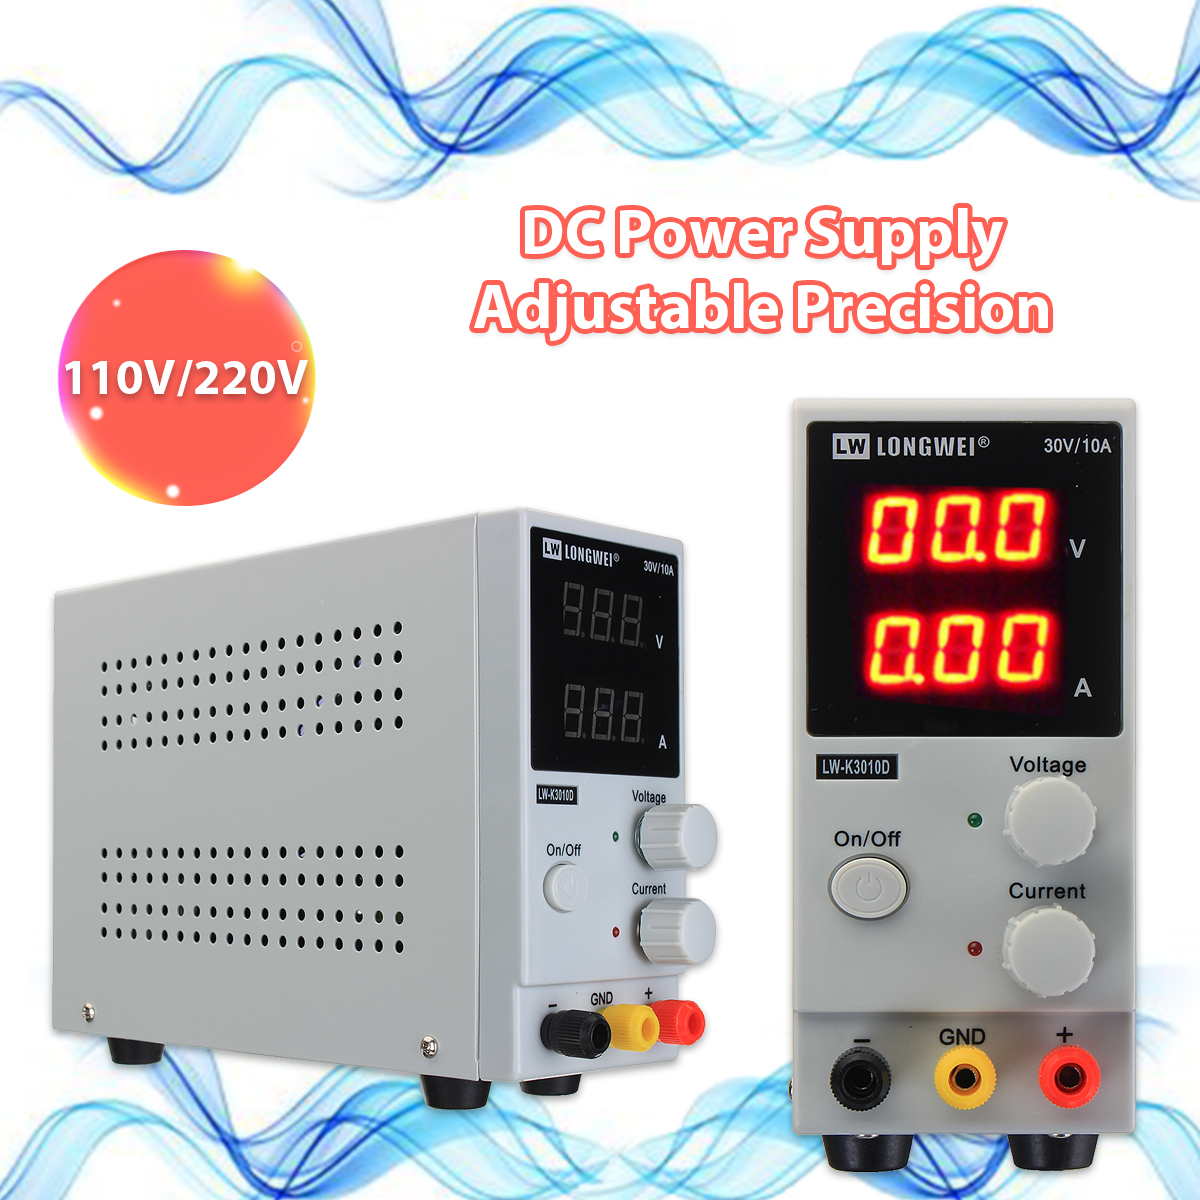 0-10A 0-30V 220V LCD DC Power Supply Variable Adjustable Switching Regulated Power Supply Digital Laboratory Voltage Regulator qj3005t variable linear input voltage 110v ac dc led digital voltage regulators power supply adjustable 0 30v 0 5a power supply